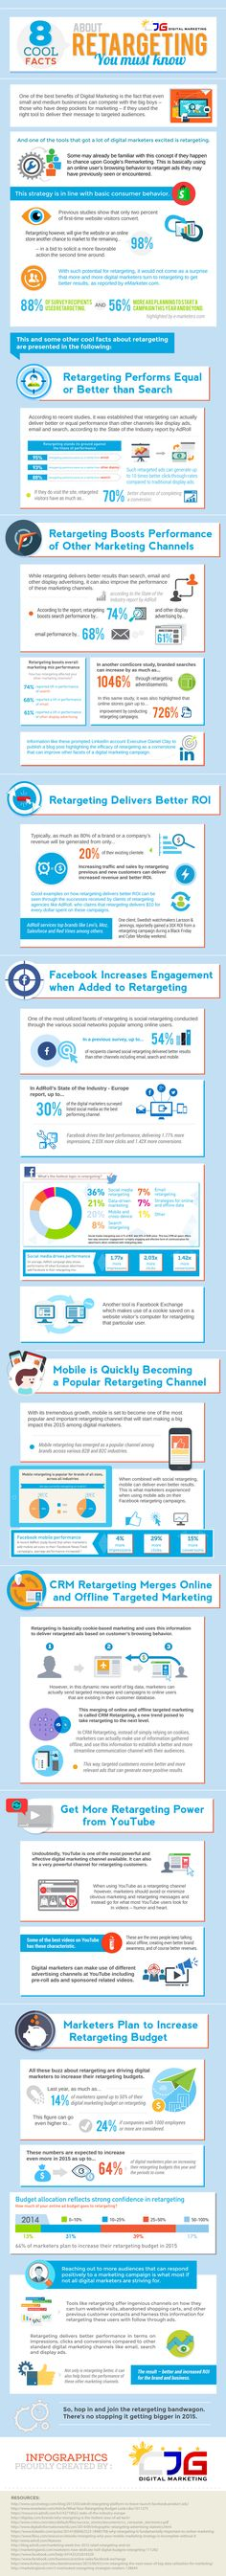 8 Cool Facts about Retargeting You Must Know (Infographic) | CJG Digital Marketing